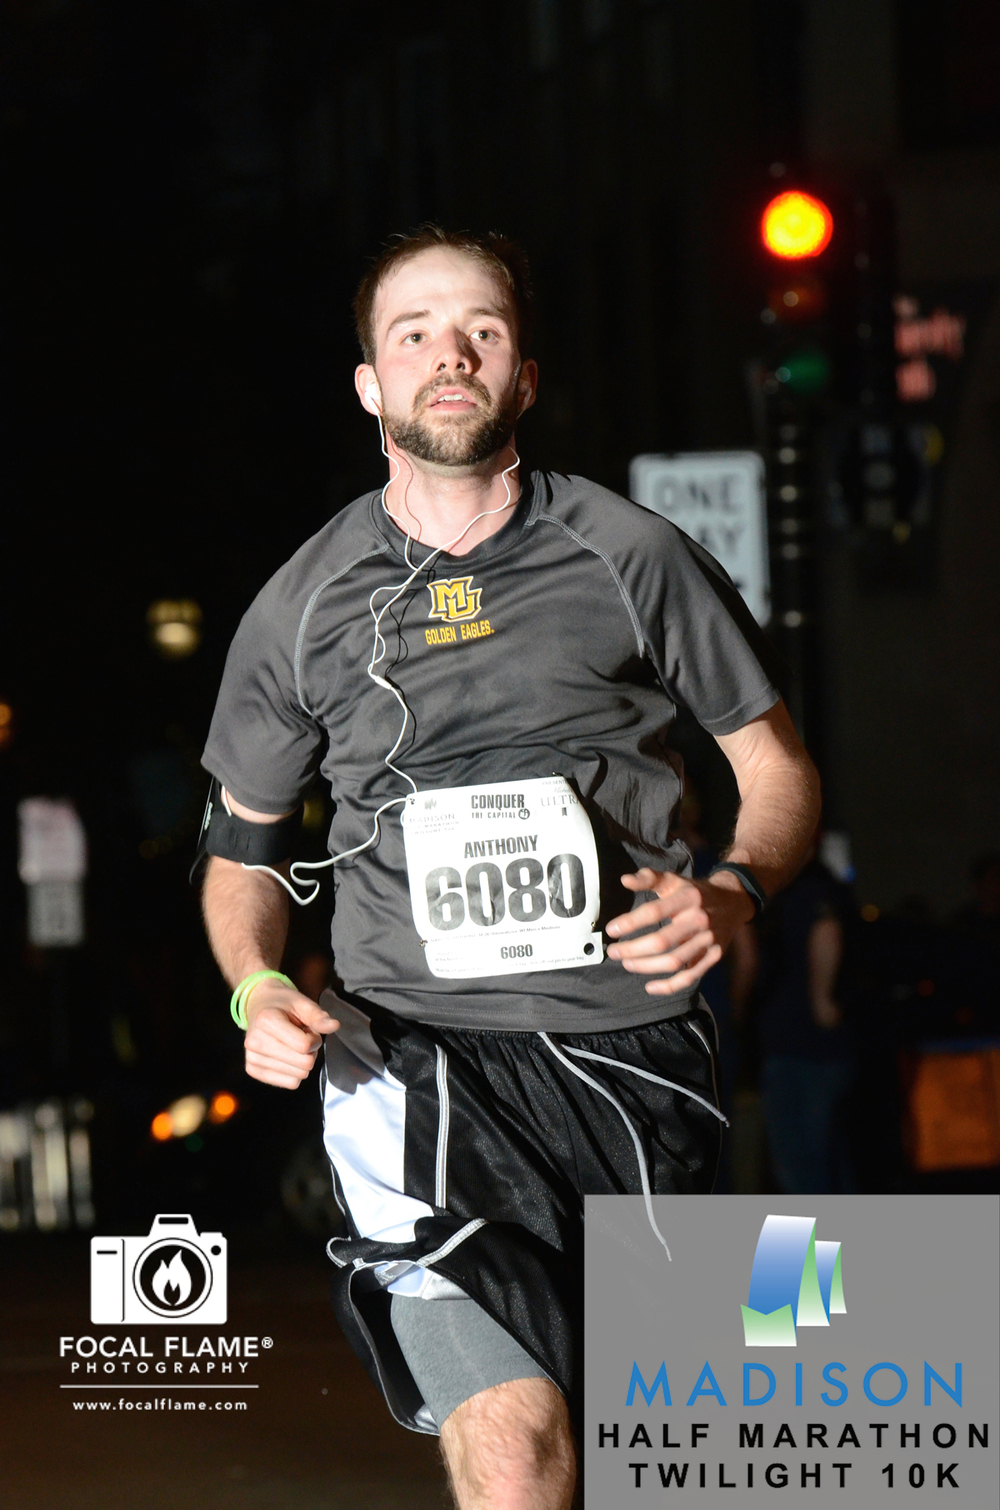 On May 24, Anthony Garcia ran the Madison Marathon Twilight 10K, racing through the downtown streets at nightfall. © 2014 Focal Flame Photography | Photo credit: Paul McMahon